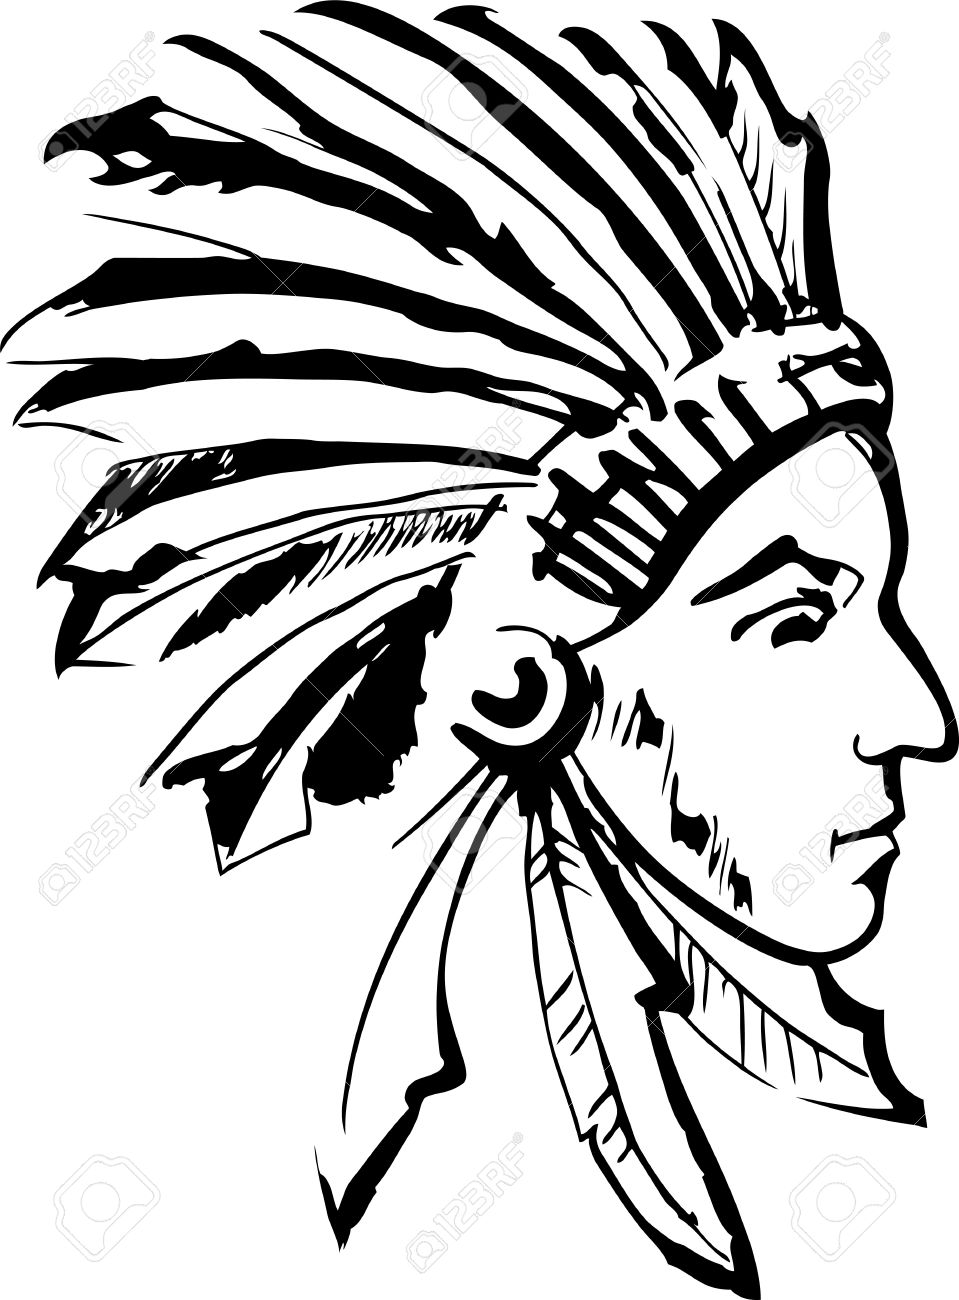 native american indian chief royalty free cliparts vectors and